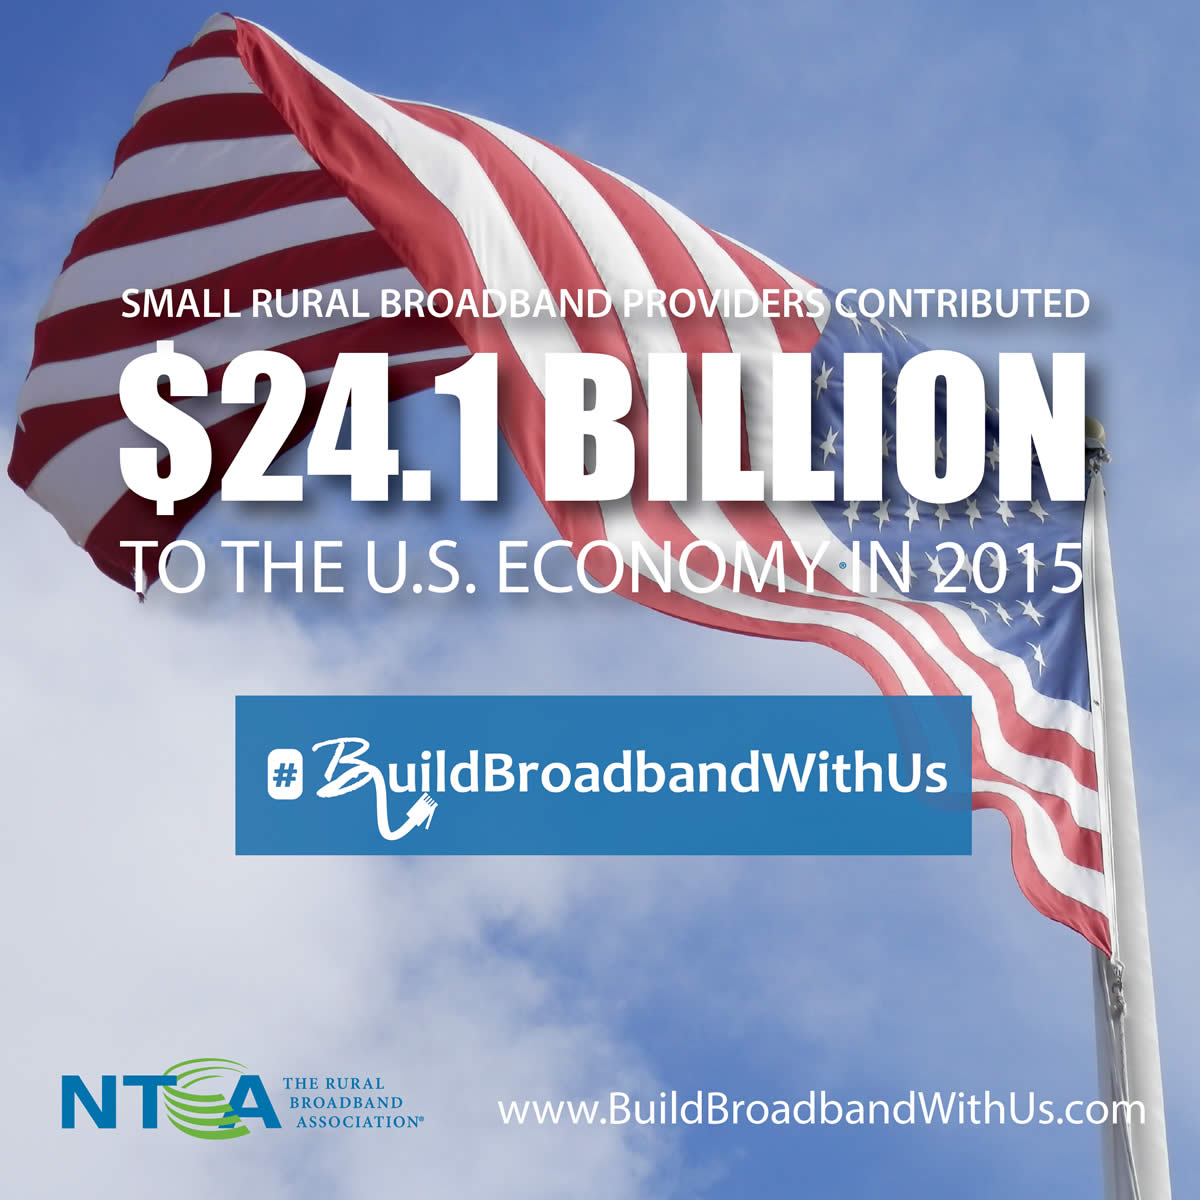 $24.1 Billion Contributed to the U.S. Economy in 2015